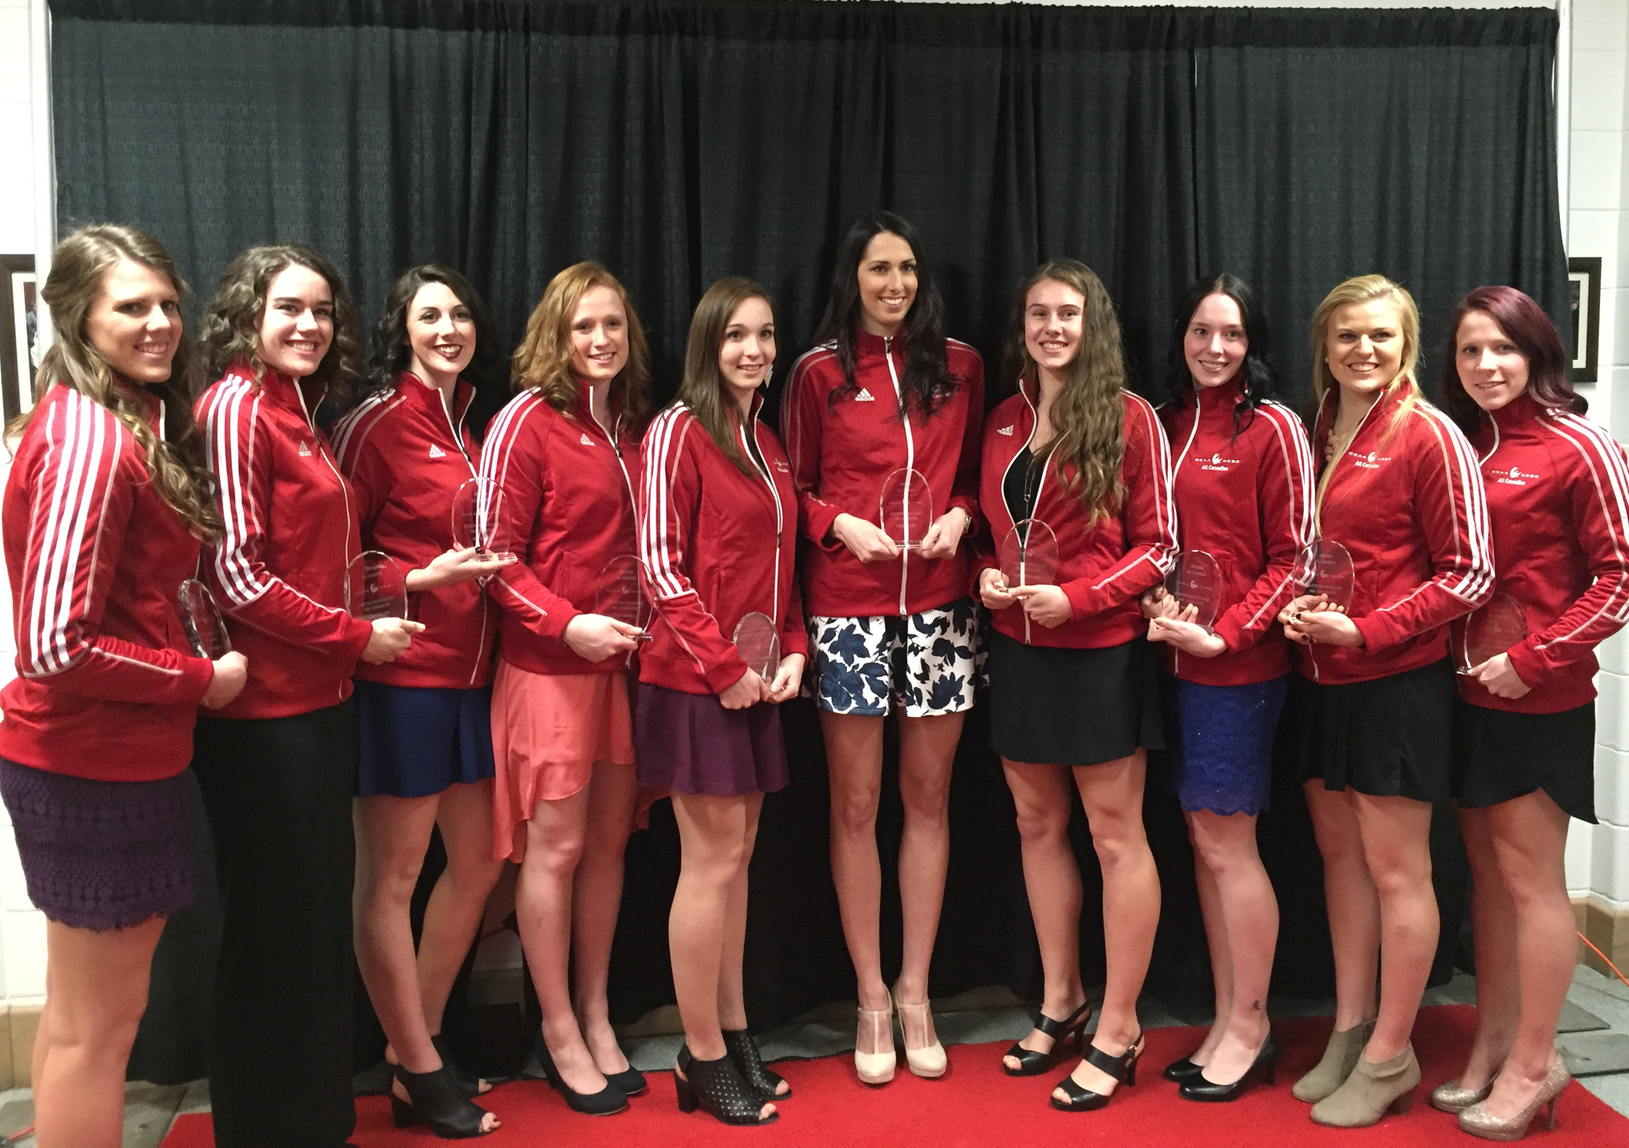 2016 CCAA Women's Volleyball All-Canadians